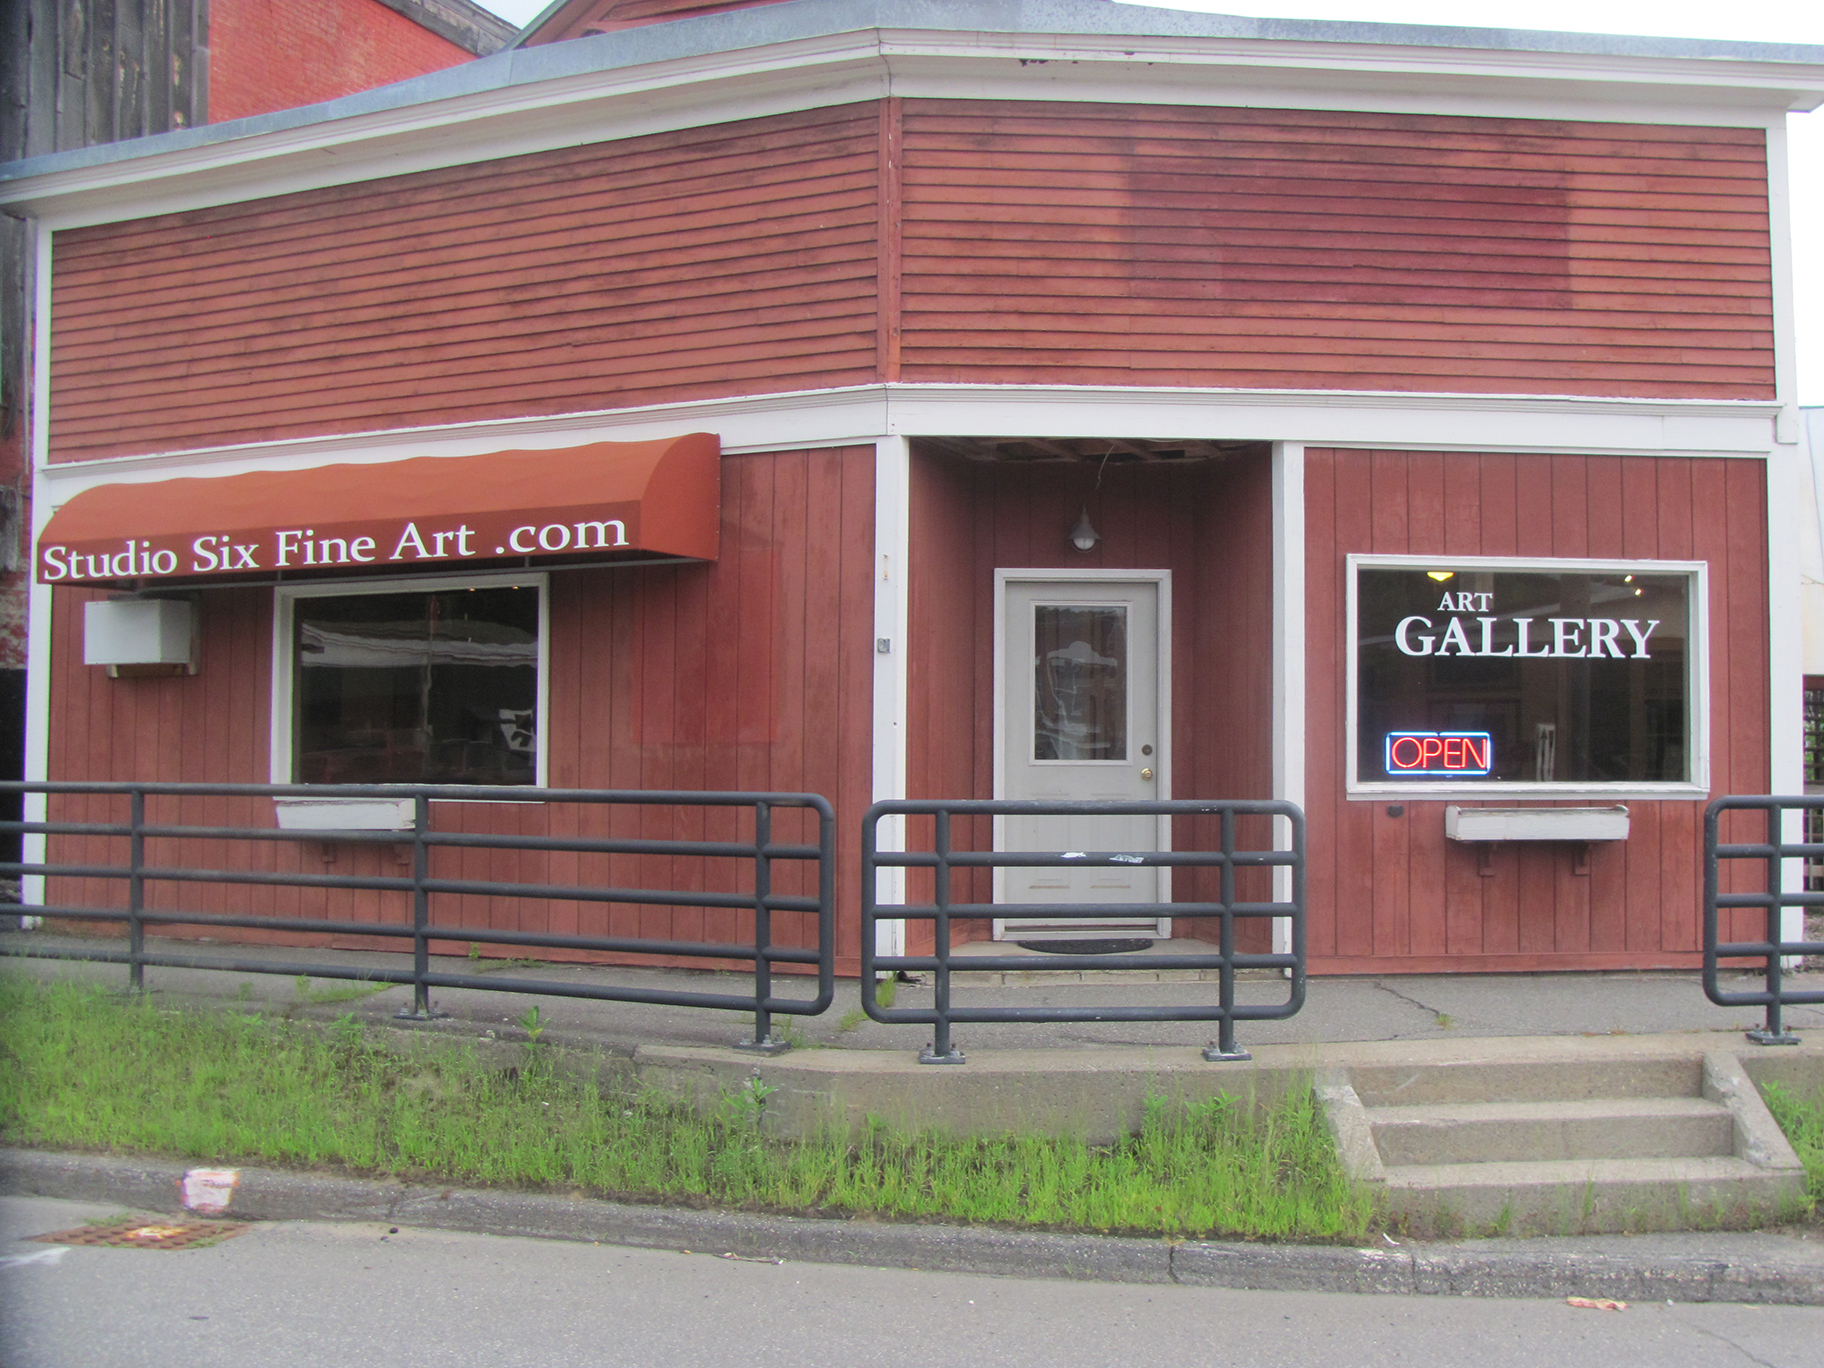 Exterior of Studio Six Fine Art